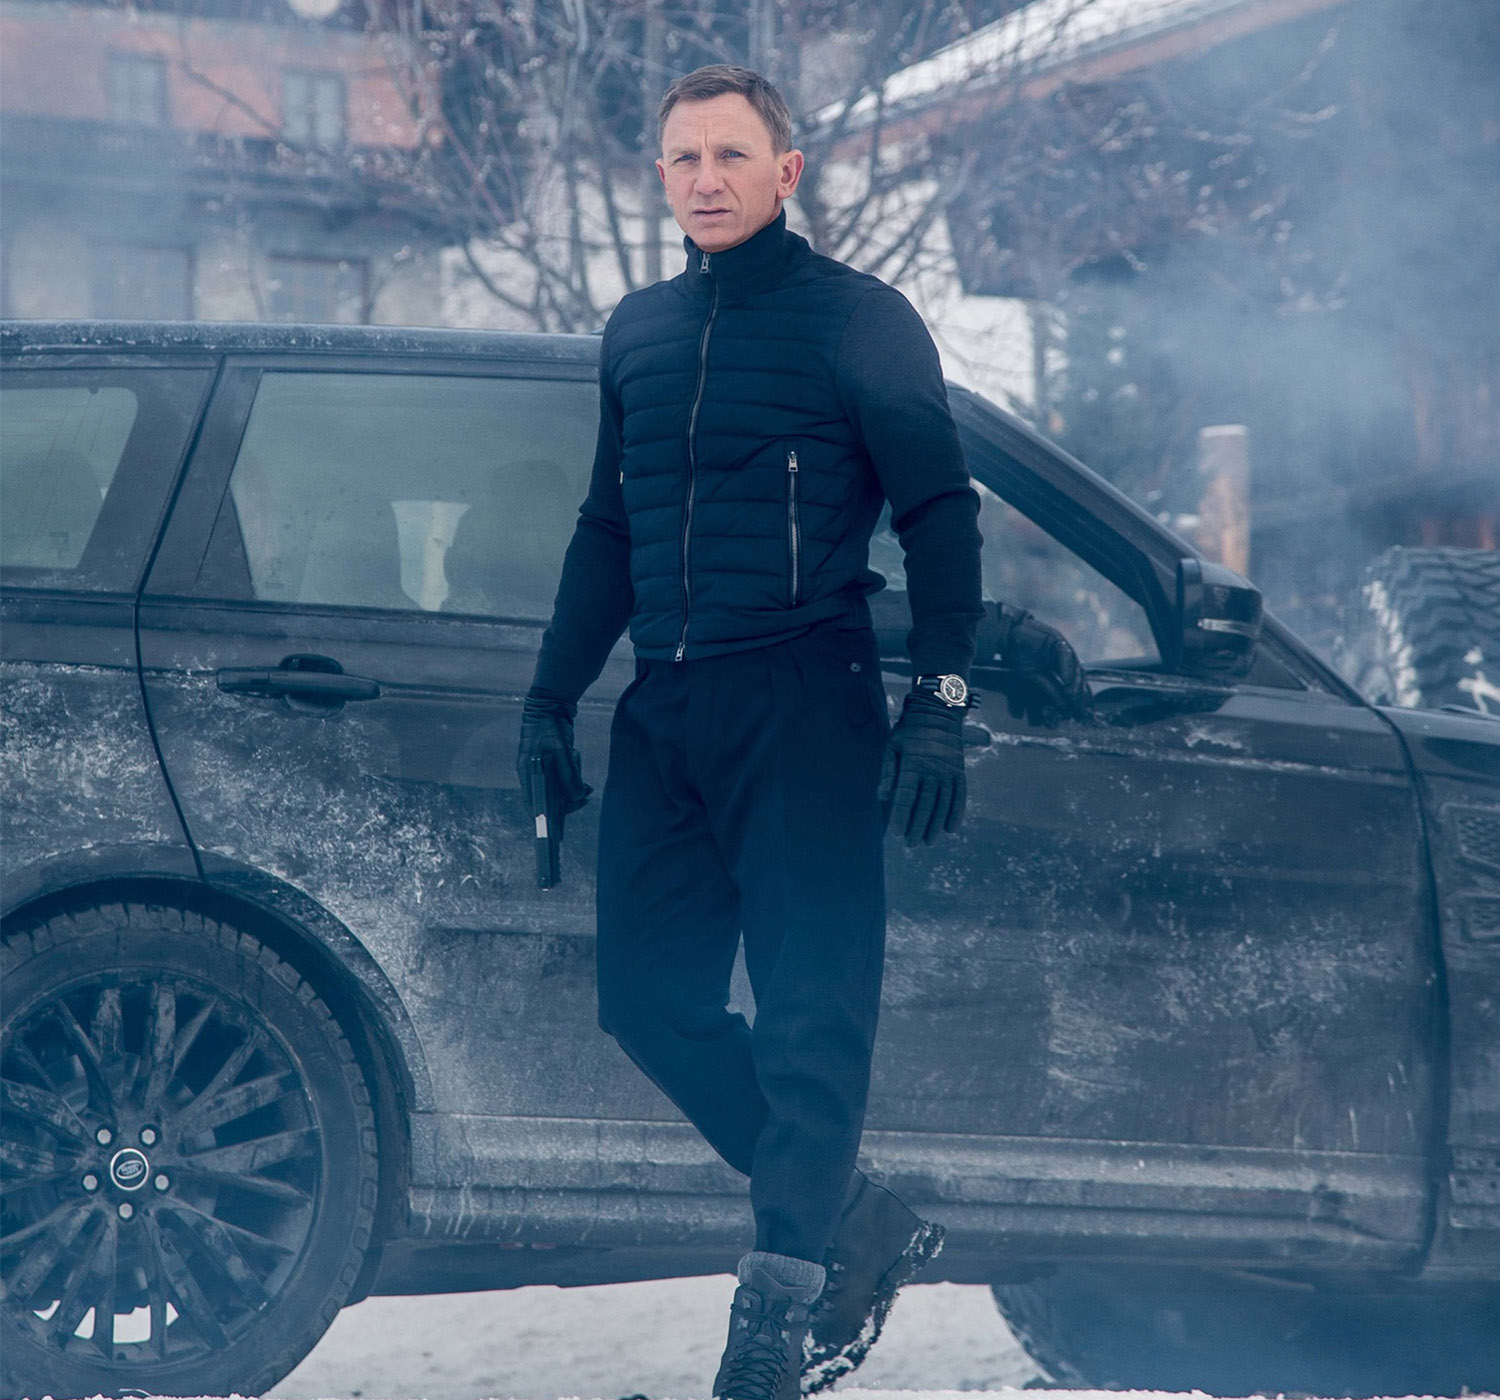 Christie's James Bond Spectre Auction - Daniel Craig as James Bond